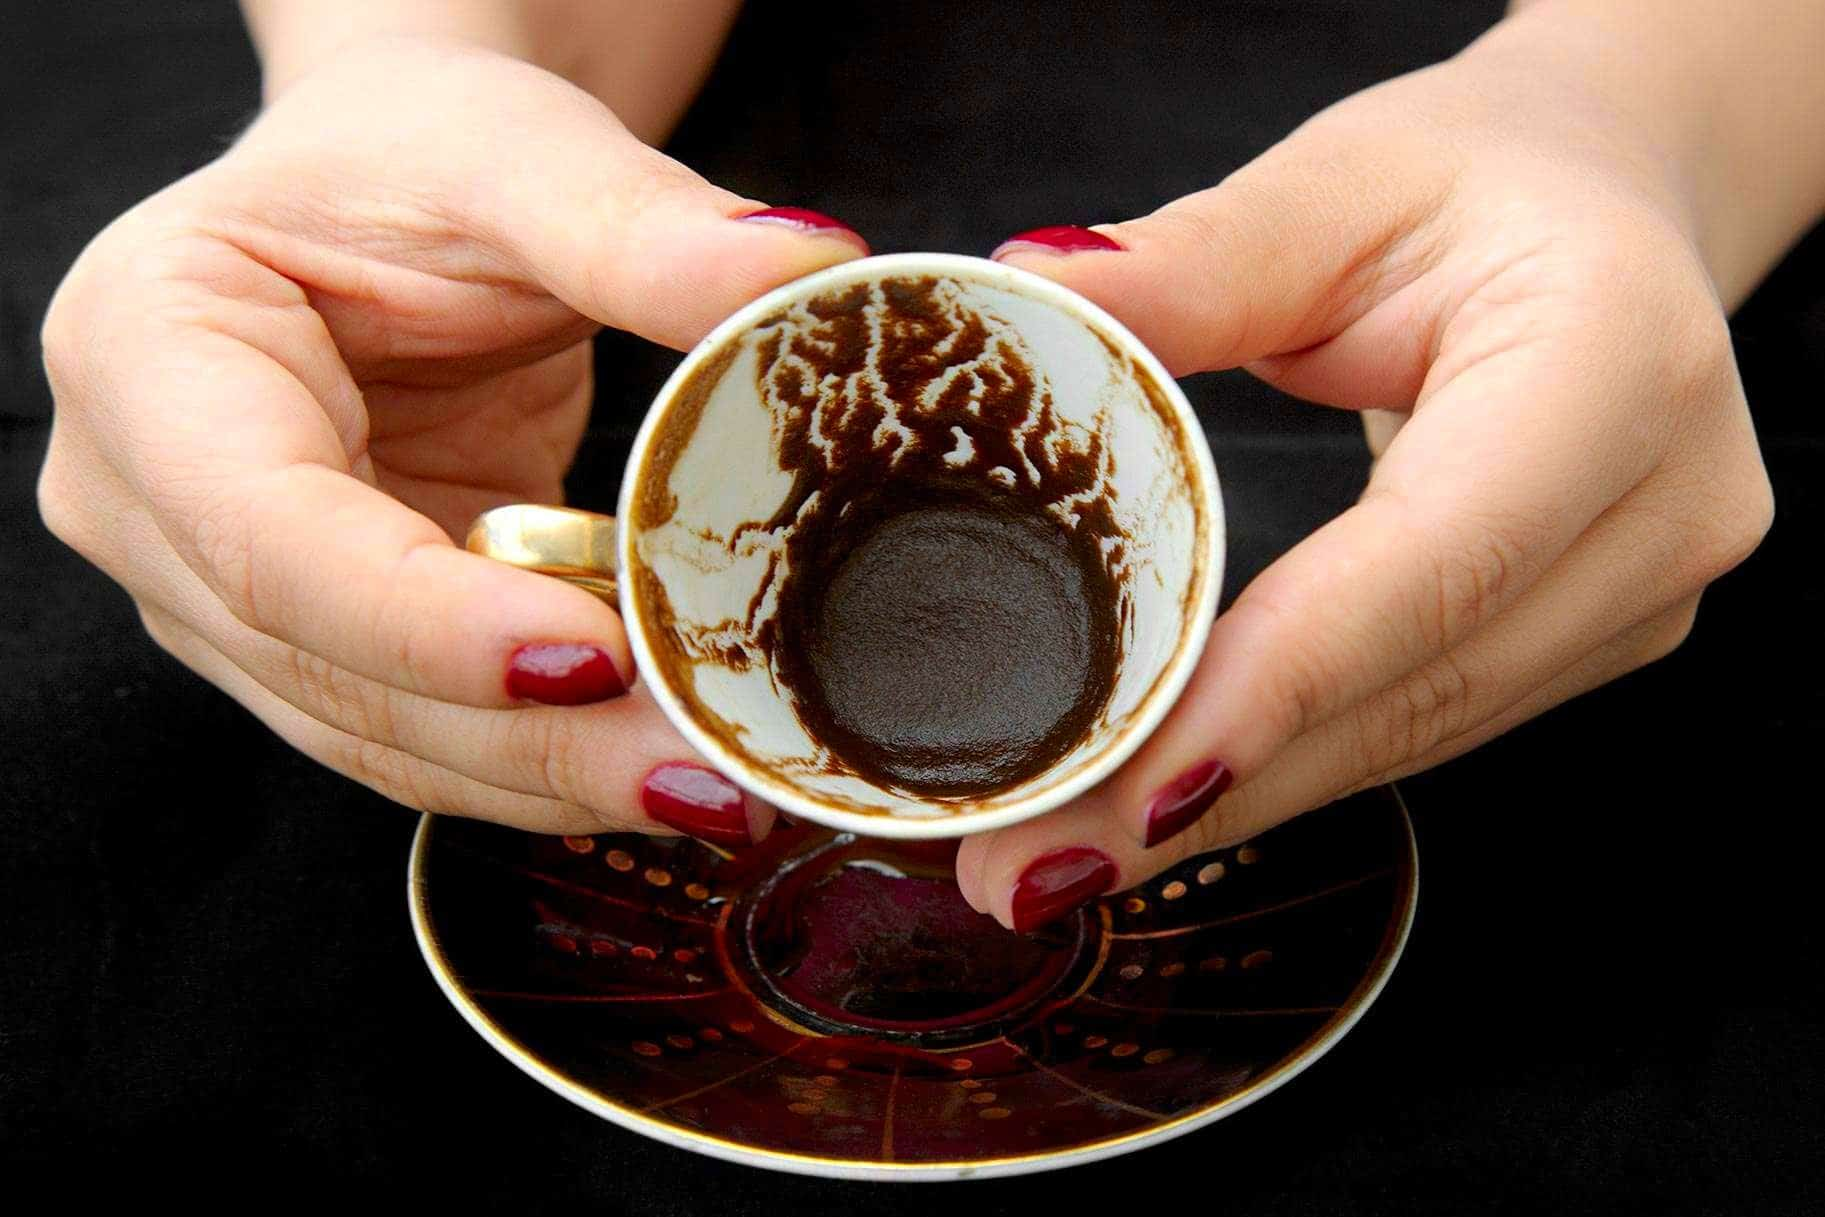 In the 16th Century, Turkish women could initiate divorce if their husbands didn't provide enough coffee.